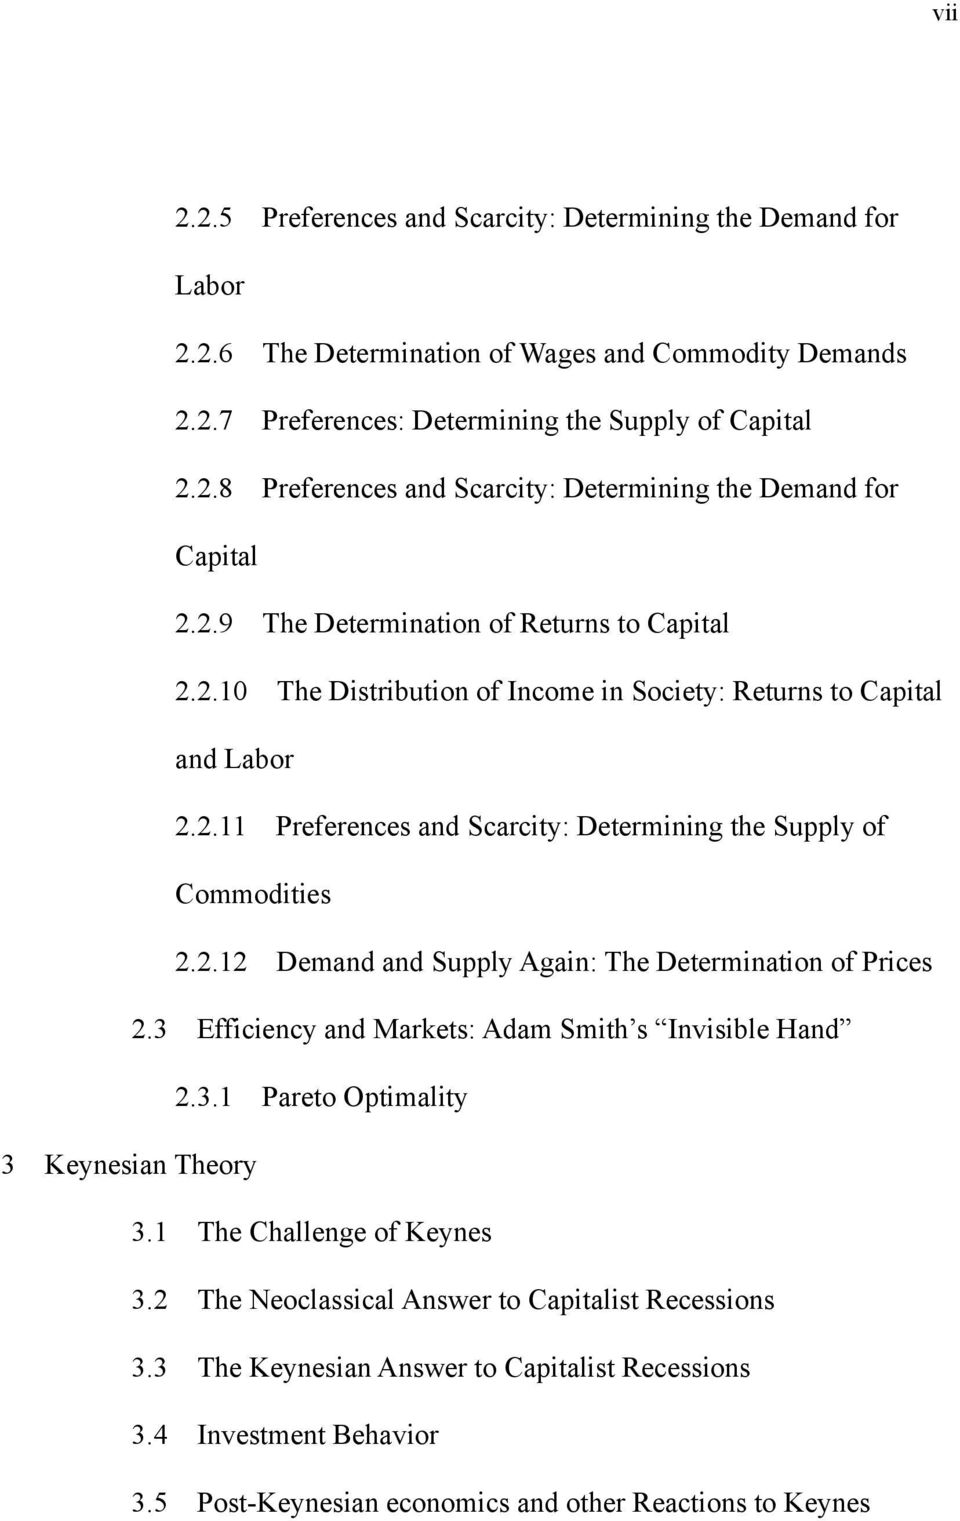 3 Efficiency and Markets: Adam Smith s Invisible Hand 2.3.1 Pareto Optimality 3 Keynesian Theory 3.1 The Challenge of Keynes 3.2 The Neoclassical Answer to Capitalist Recessions 3.